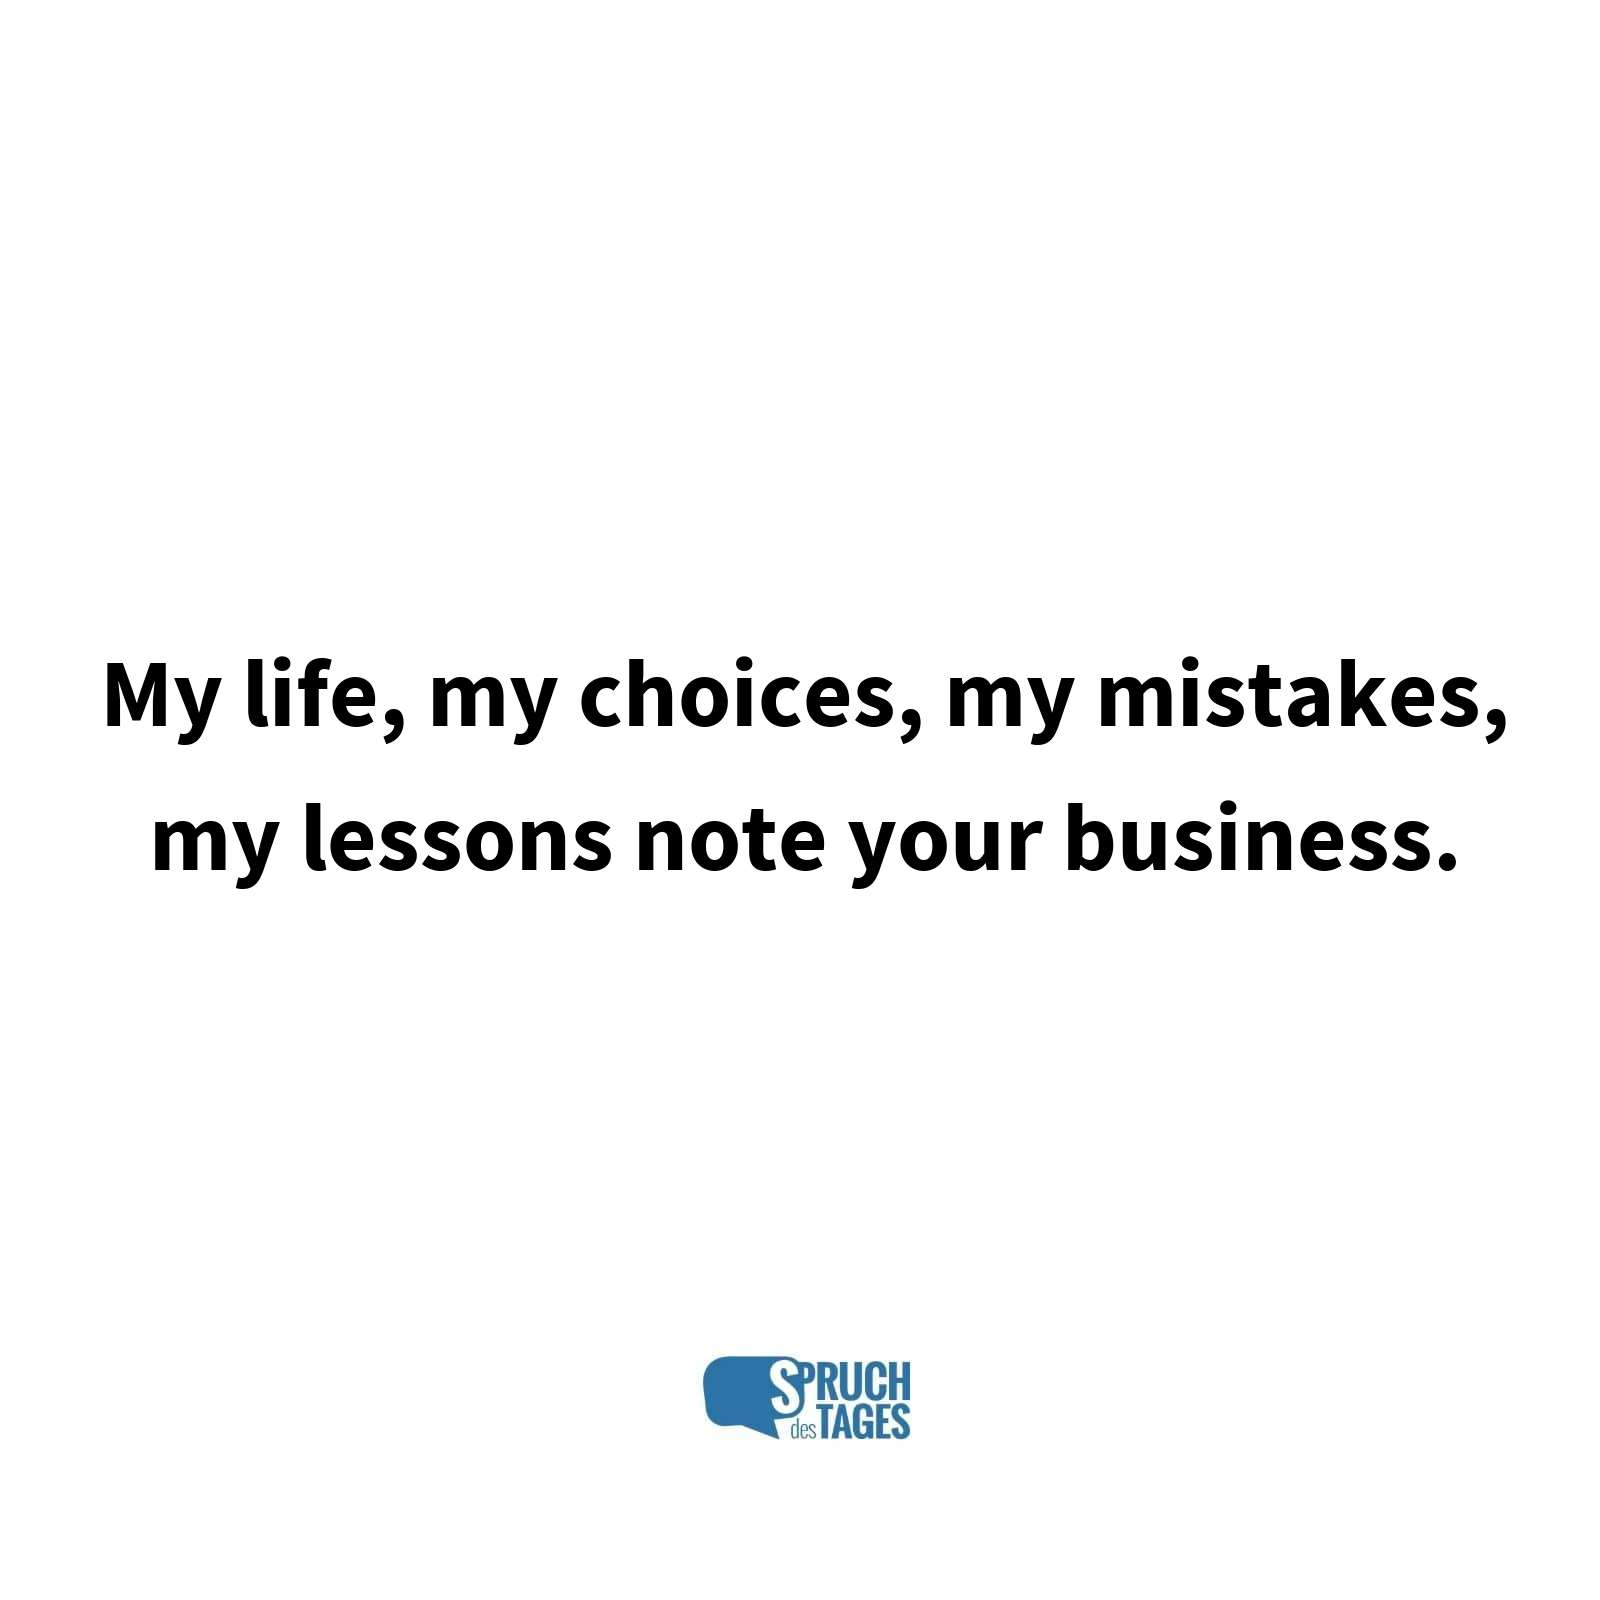 My life, my choices, my mistakes, my lessons note your business.